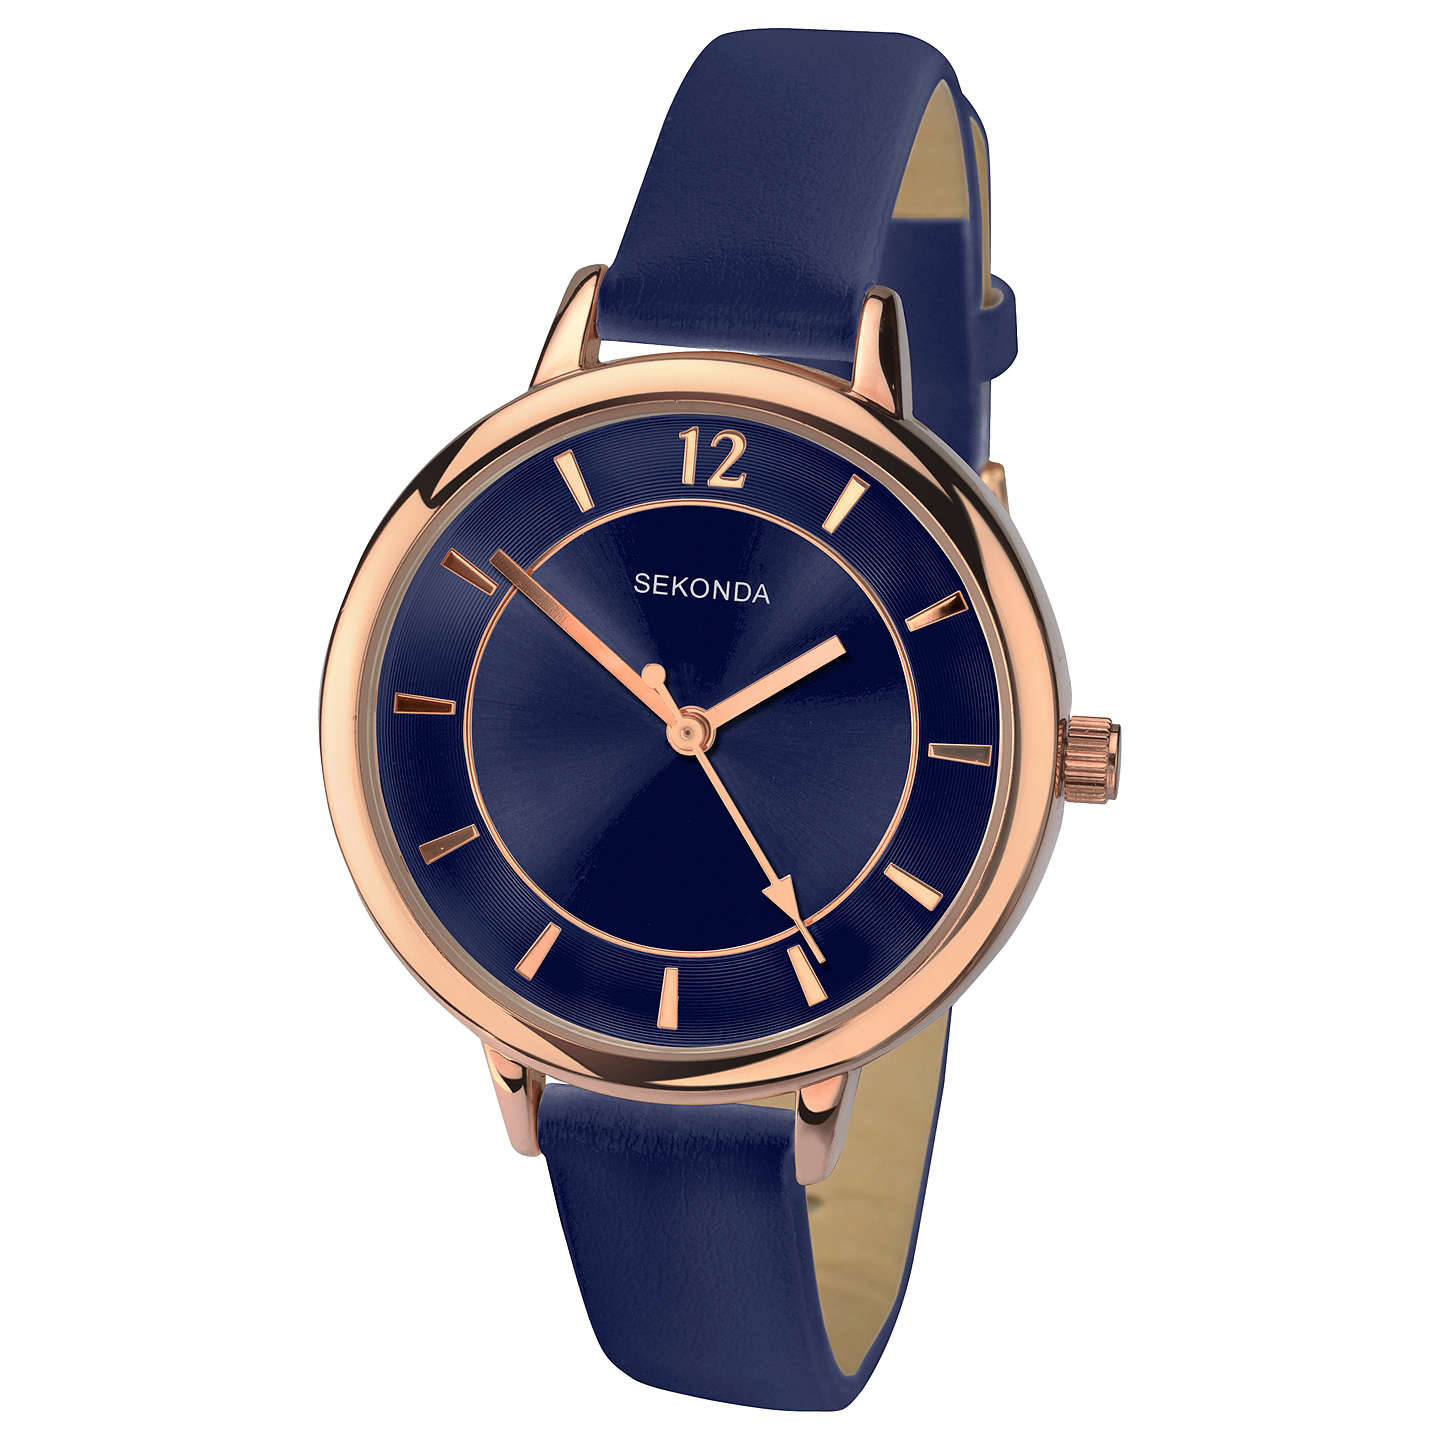 BuySekonda 2136.27 Women's Leather Look Strap Watch, Navy Online at johnlewis.com